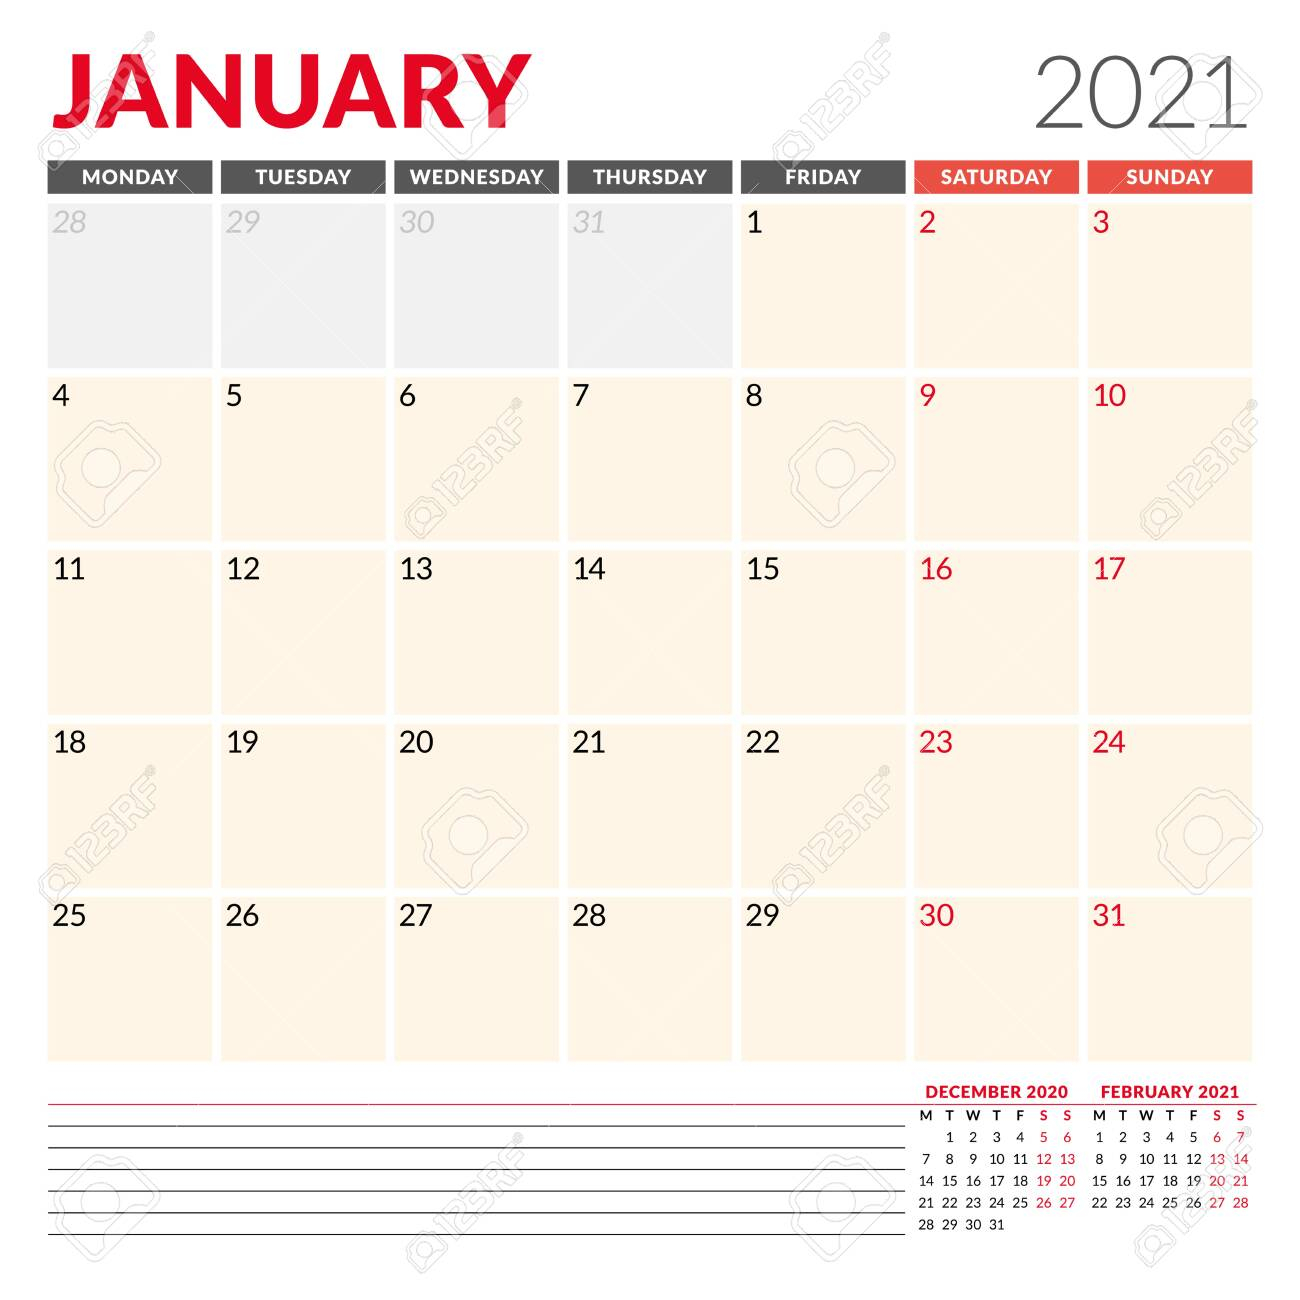 photo stock vector calendar template for january 2021 business monthly planner stationery design week starts on monday